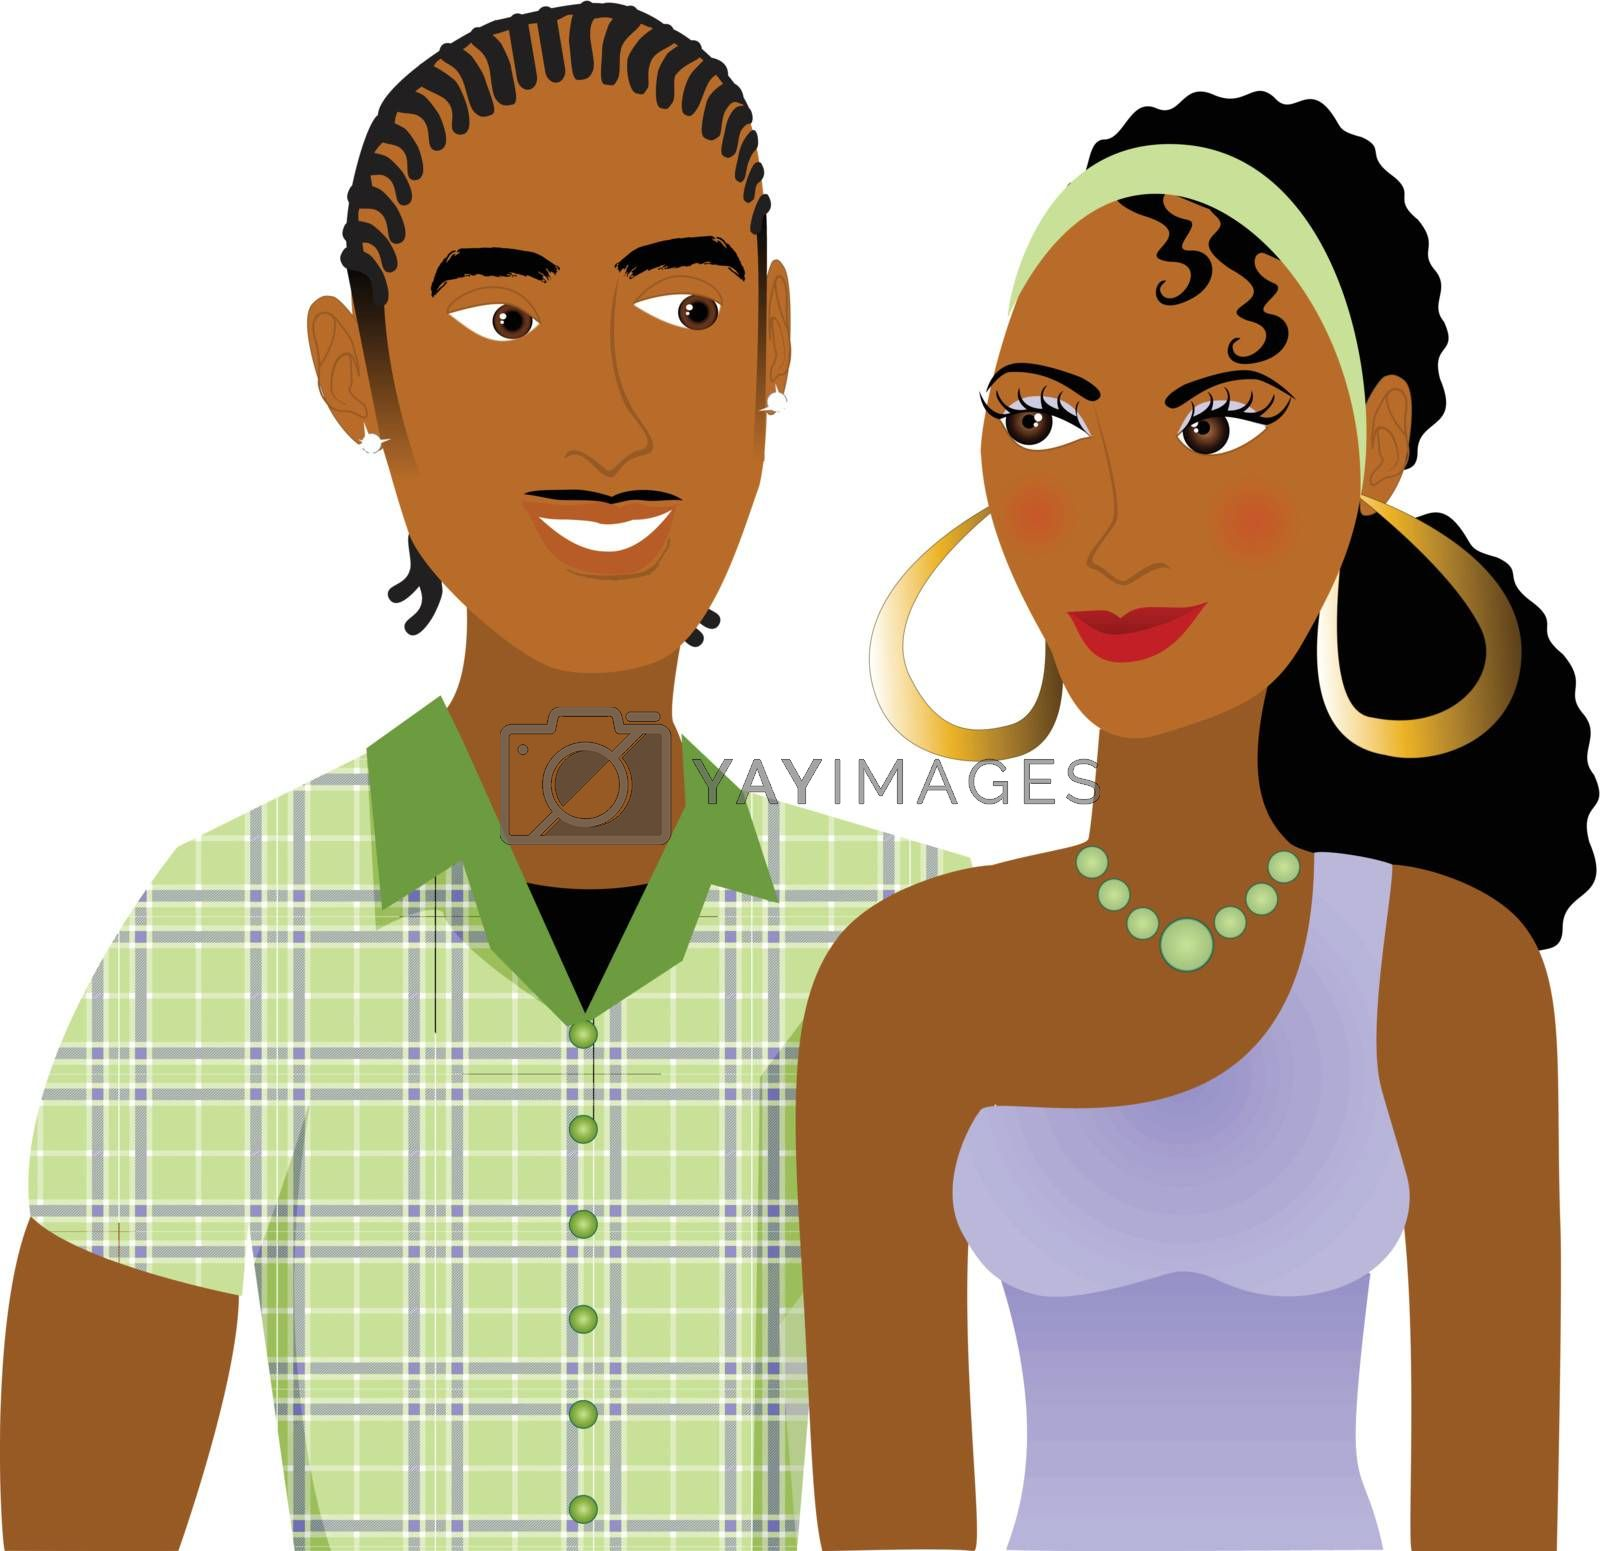 Vector Illustration of a Couple in love.